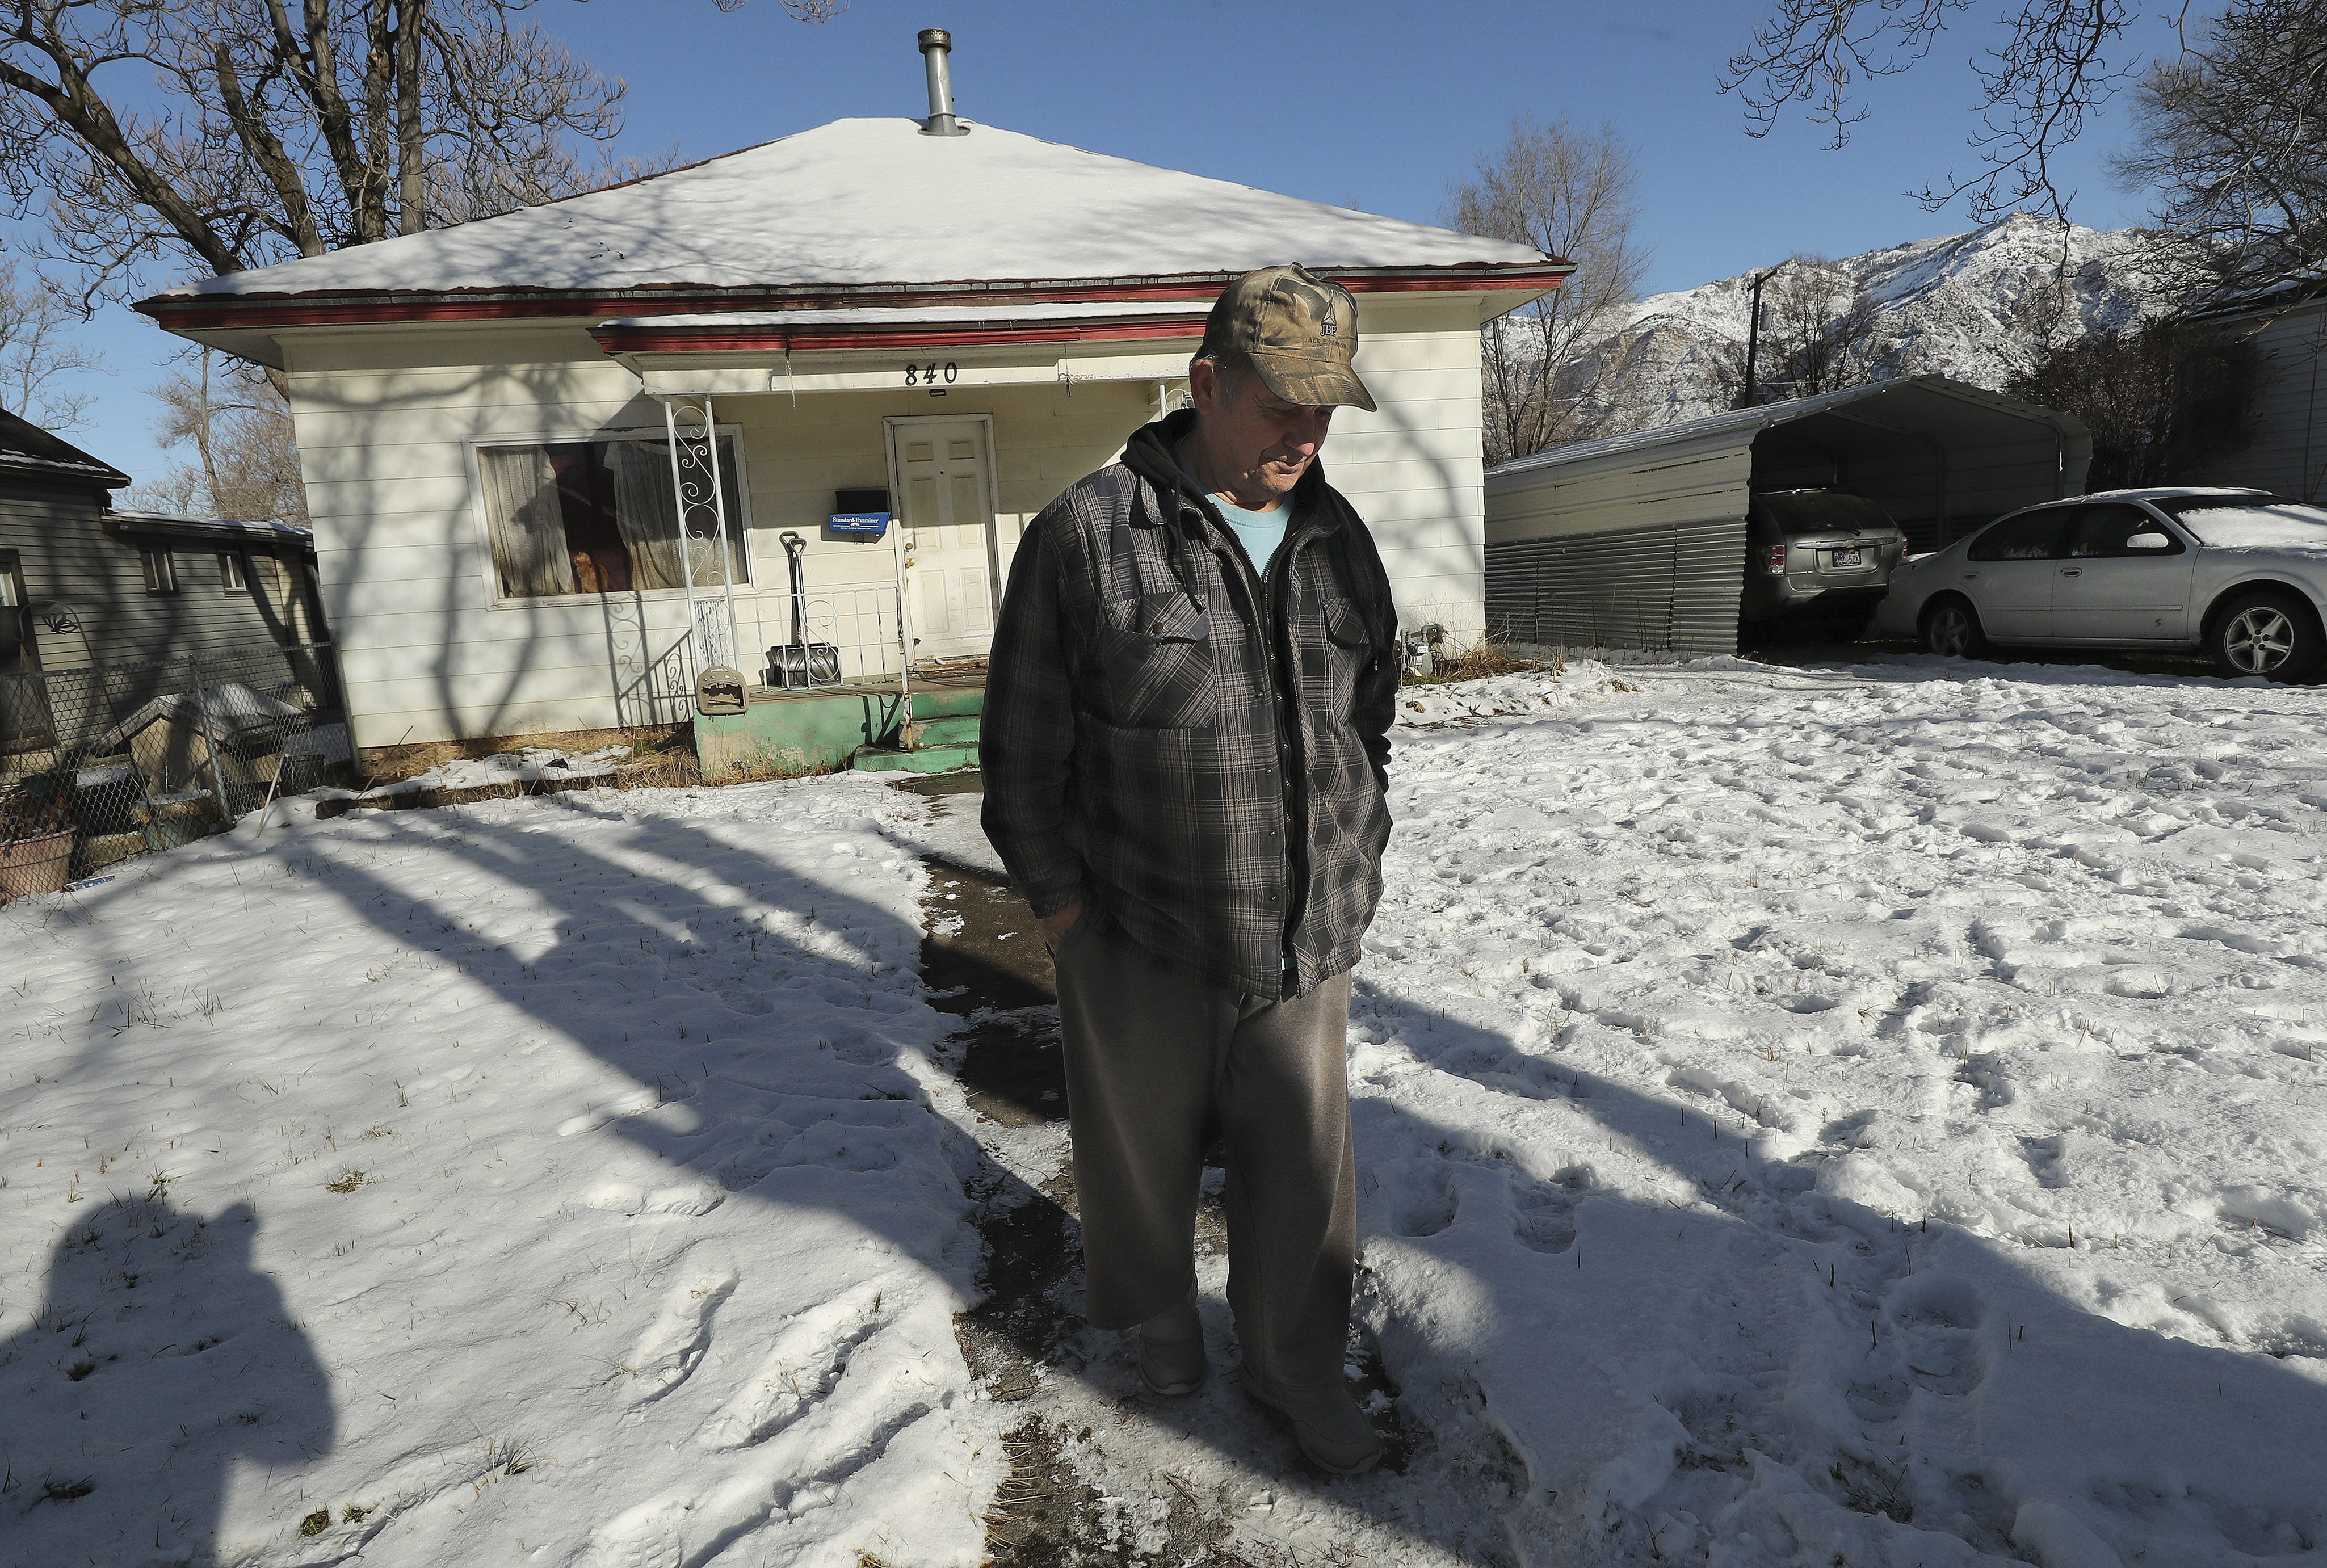 Dave Stanger walks from a house he owns at at 840 22nd St. in Ogden where two people were found dead on Wednesday, Jan. 15, 2020. Police responded to a welfare check and found the bodies.